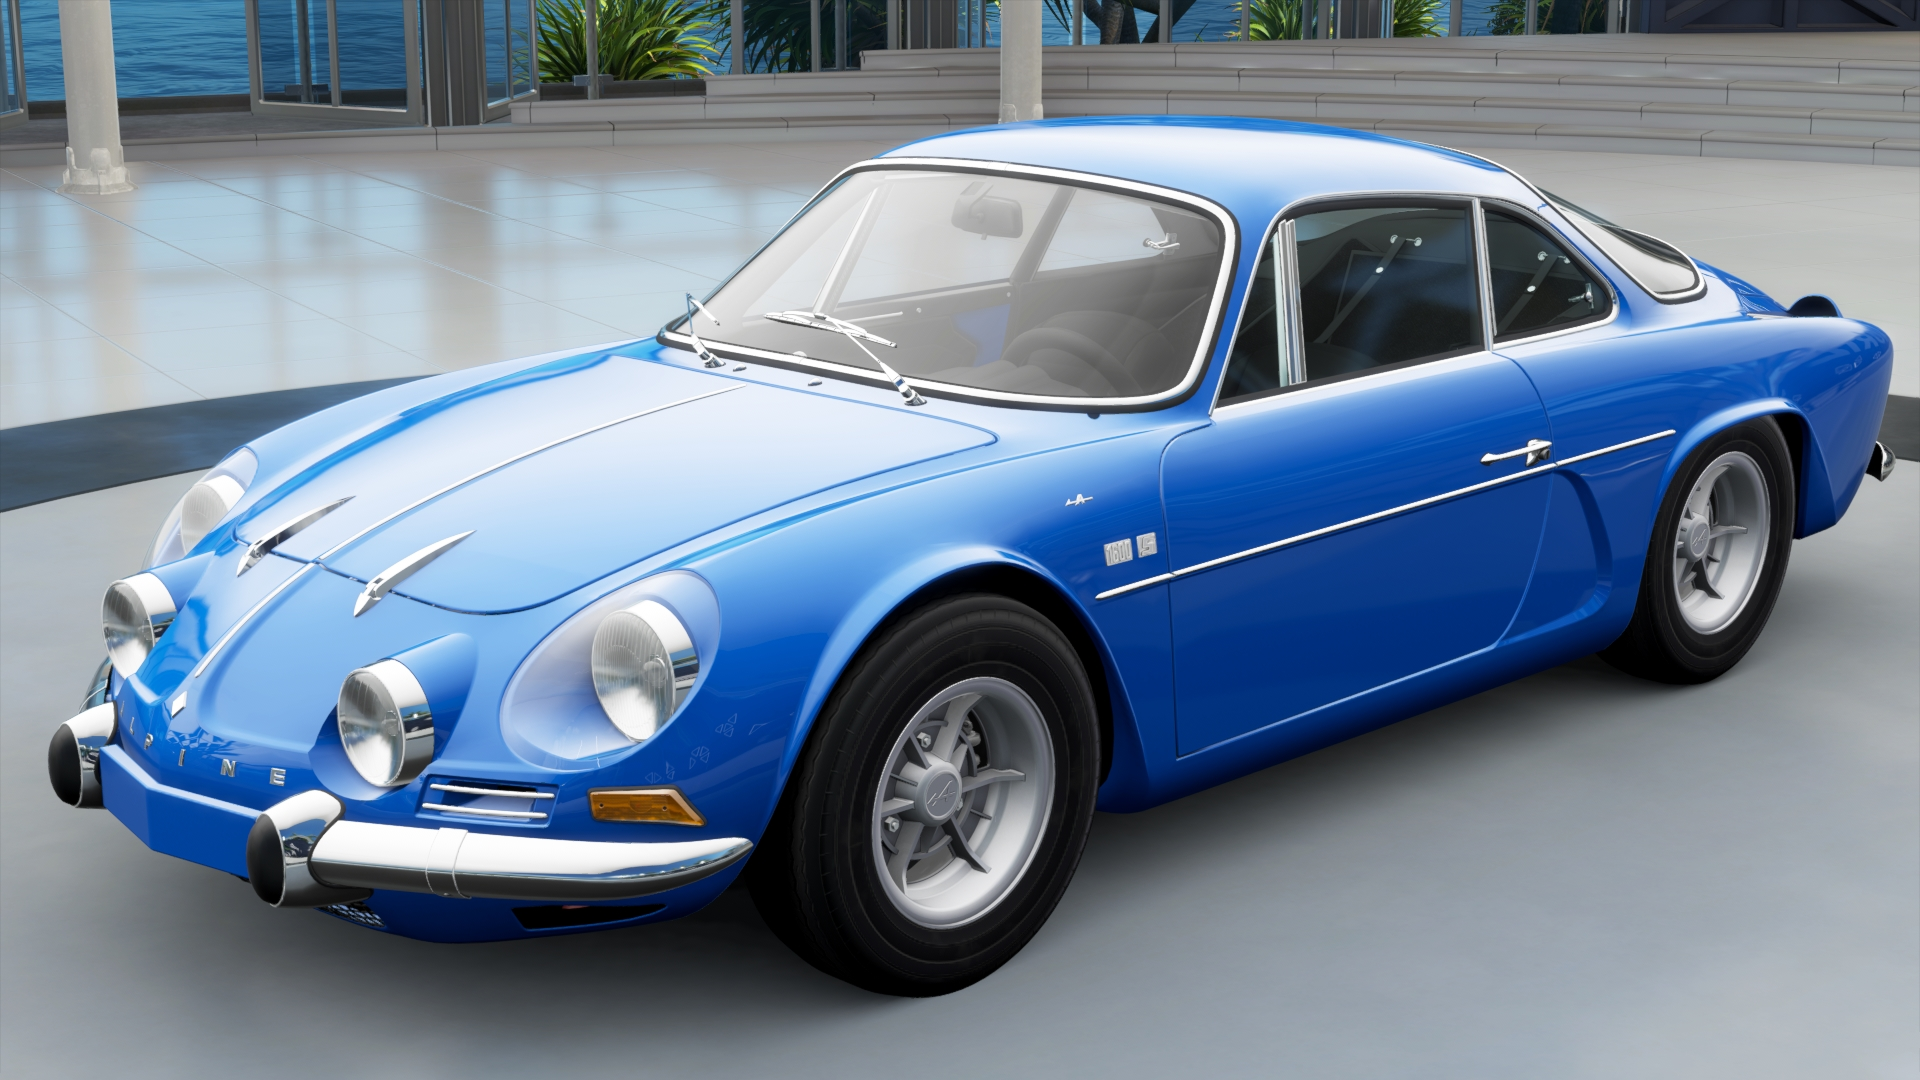 renault alpine a110 1600s forza motorsport wiki fandom powered by wikia. Black Bedroom Furniture Sets. Home Design Ideas